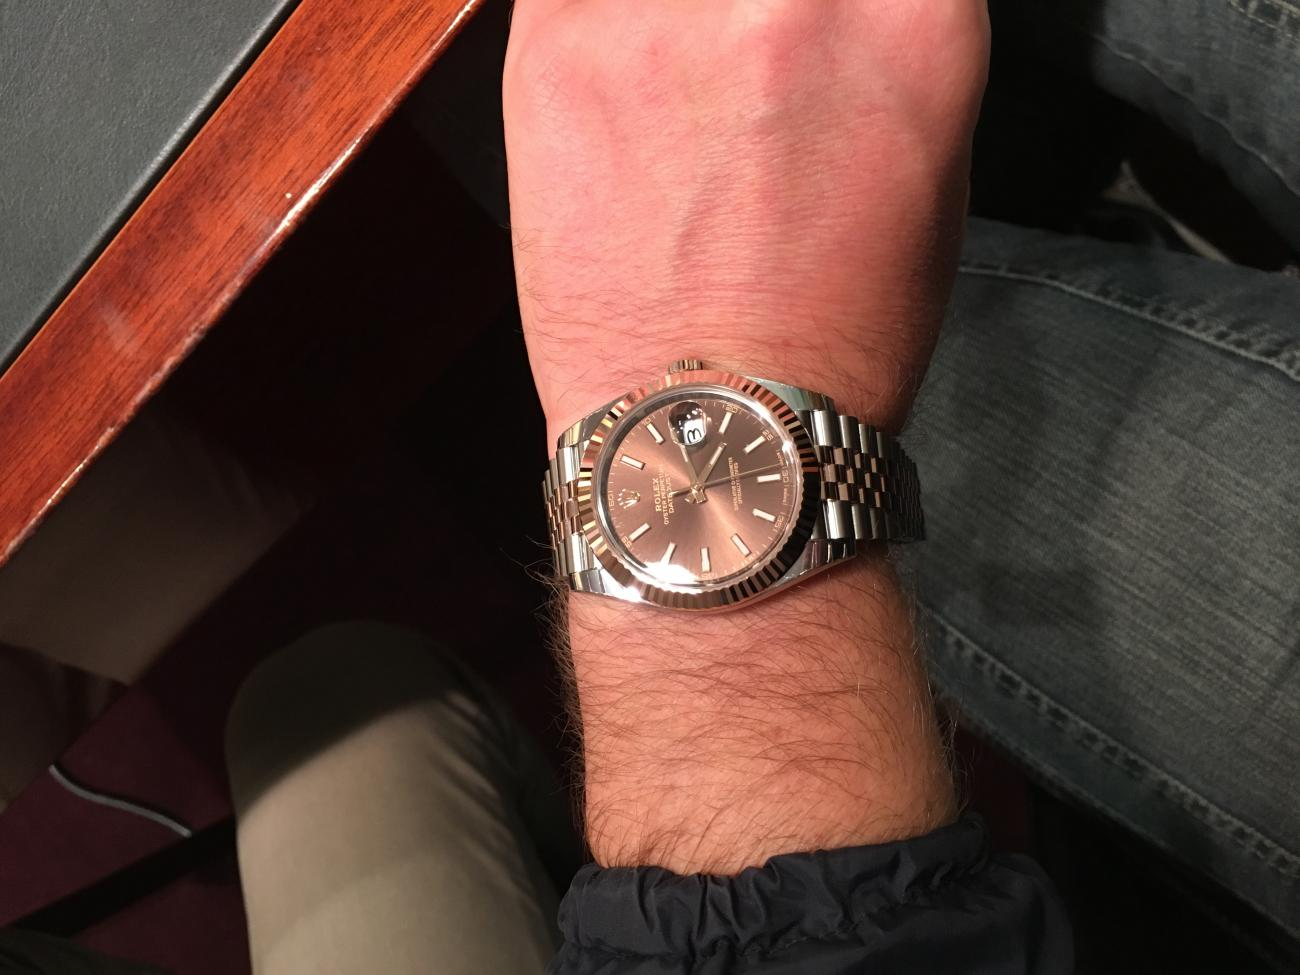 Confronto new Datejust 41  126234  vs Datejust II  116334   page 3